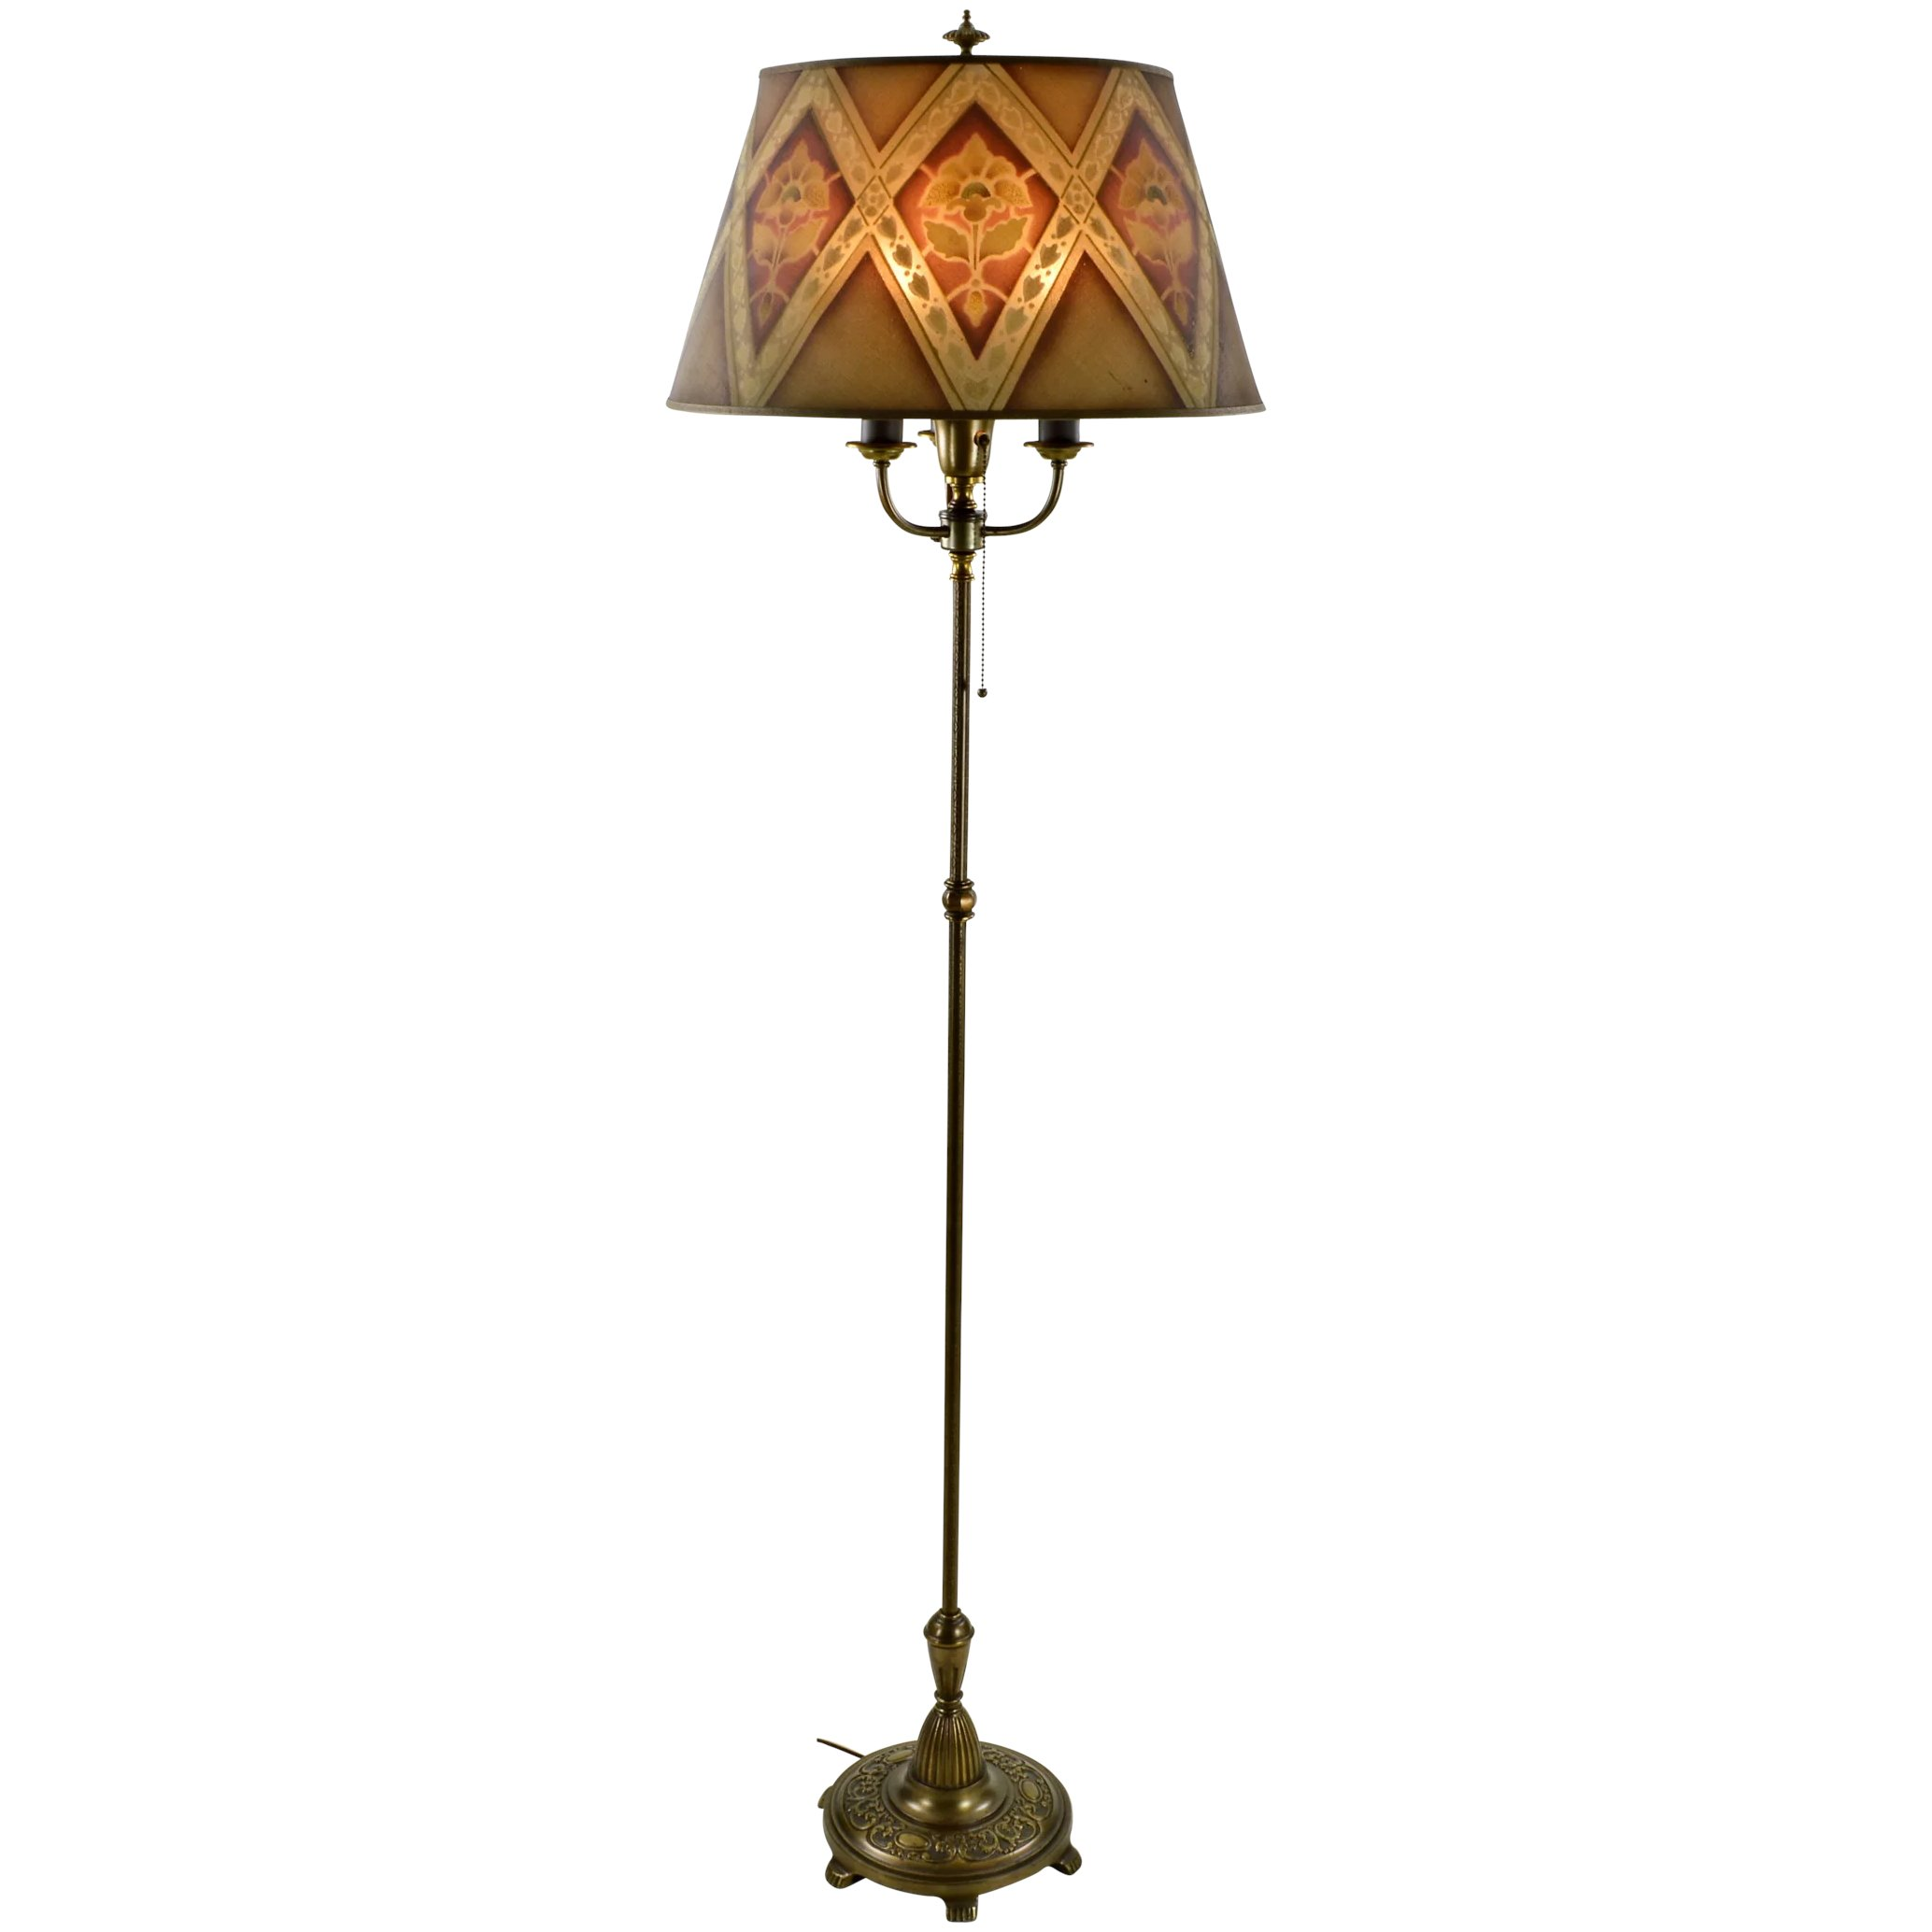 Vintage rembrandt floor lamp mesh shade reserved for d sold click to expand aloadofball Gallery